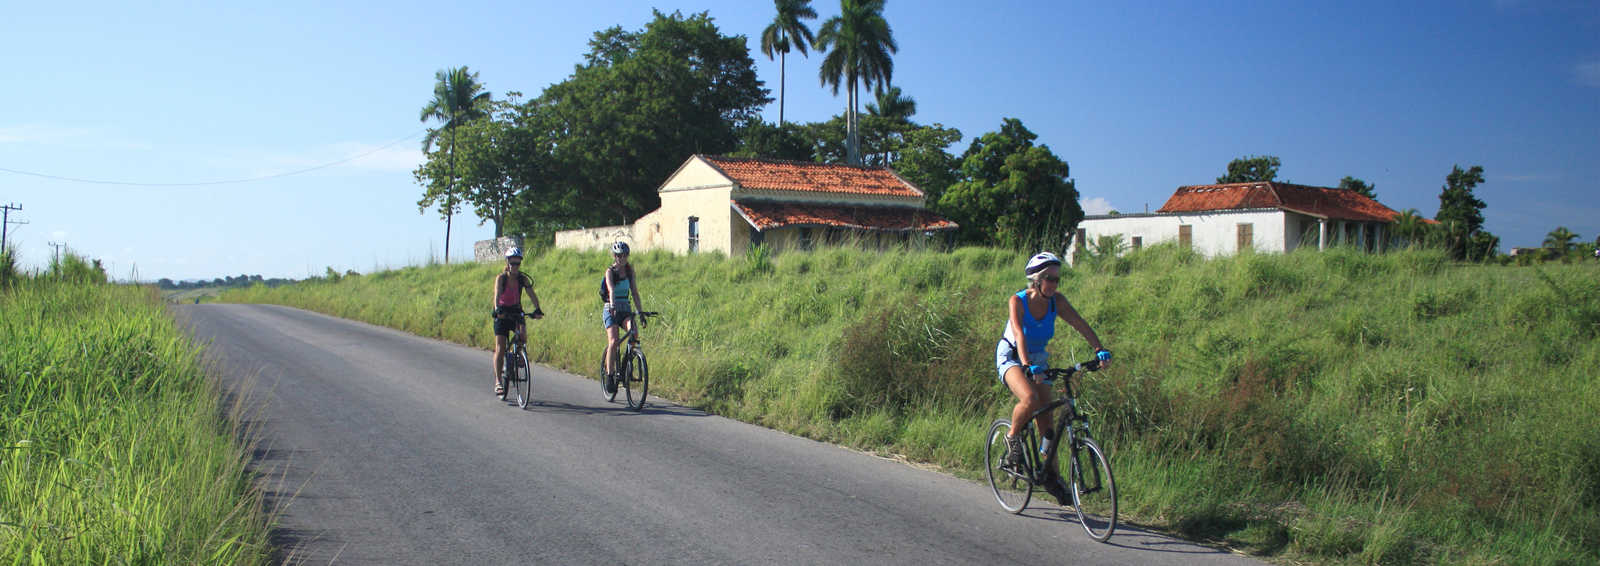 Cyclists on country road, Costa Rica